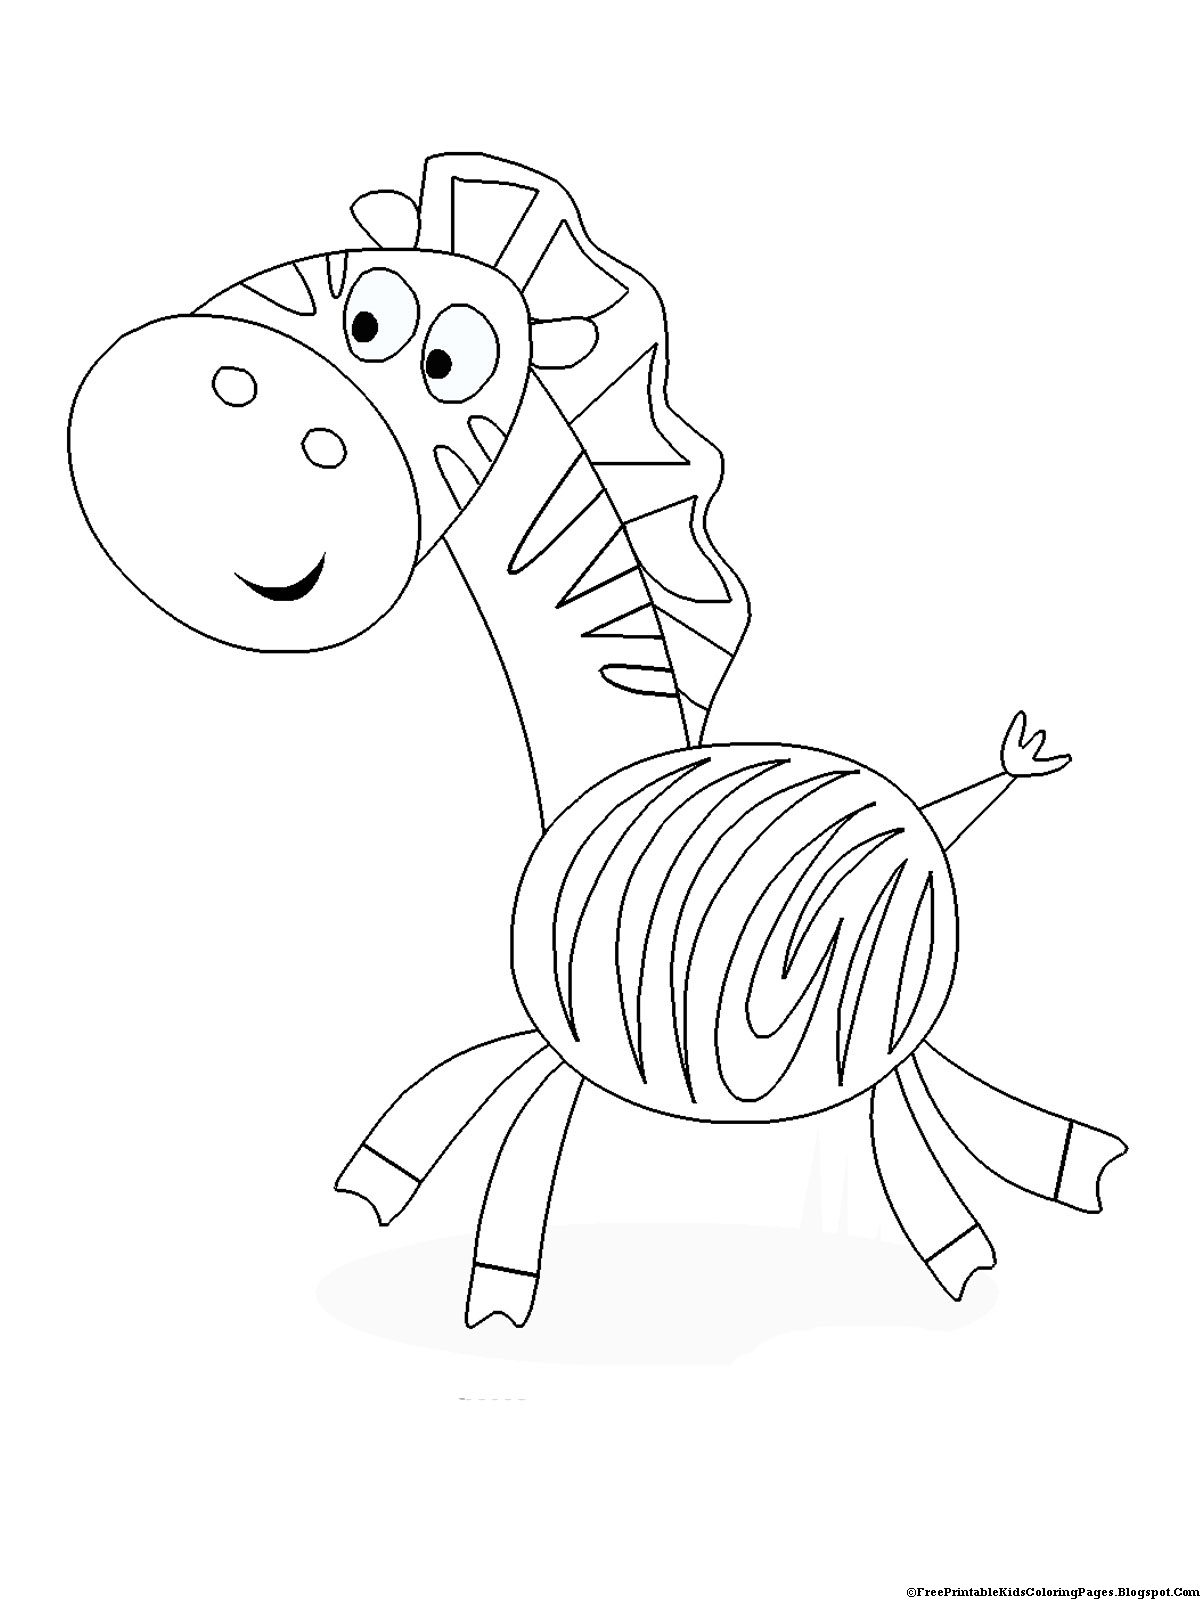 coloring printables zebra coloring pages free printable kids coloring pages coloring printables 1 2